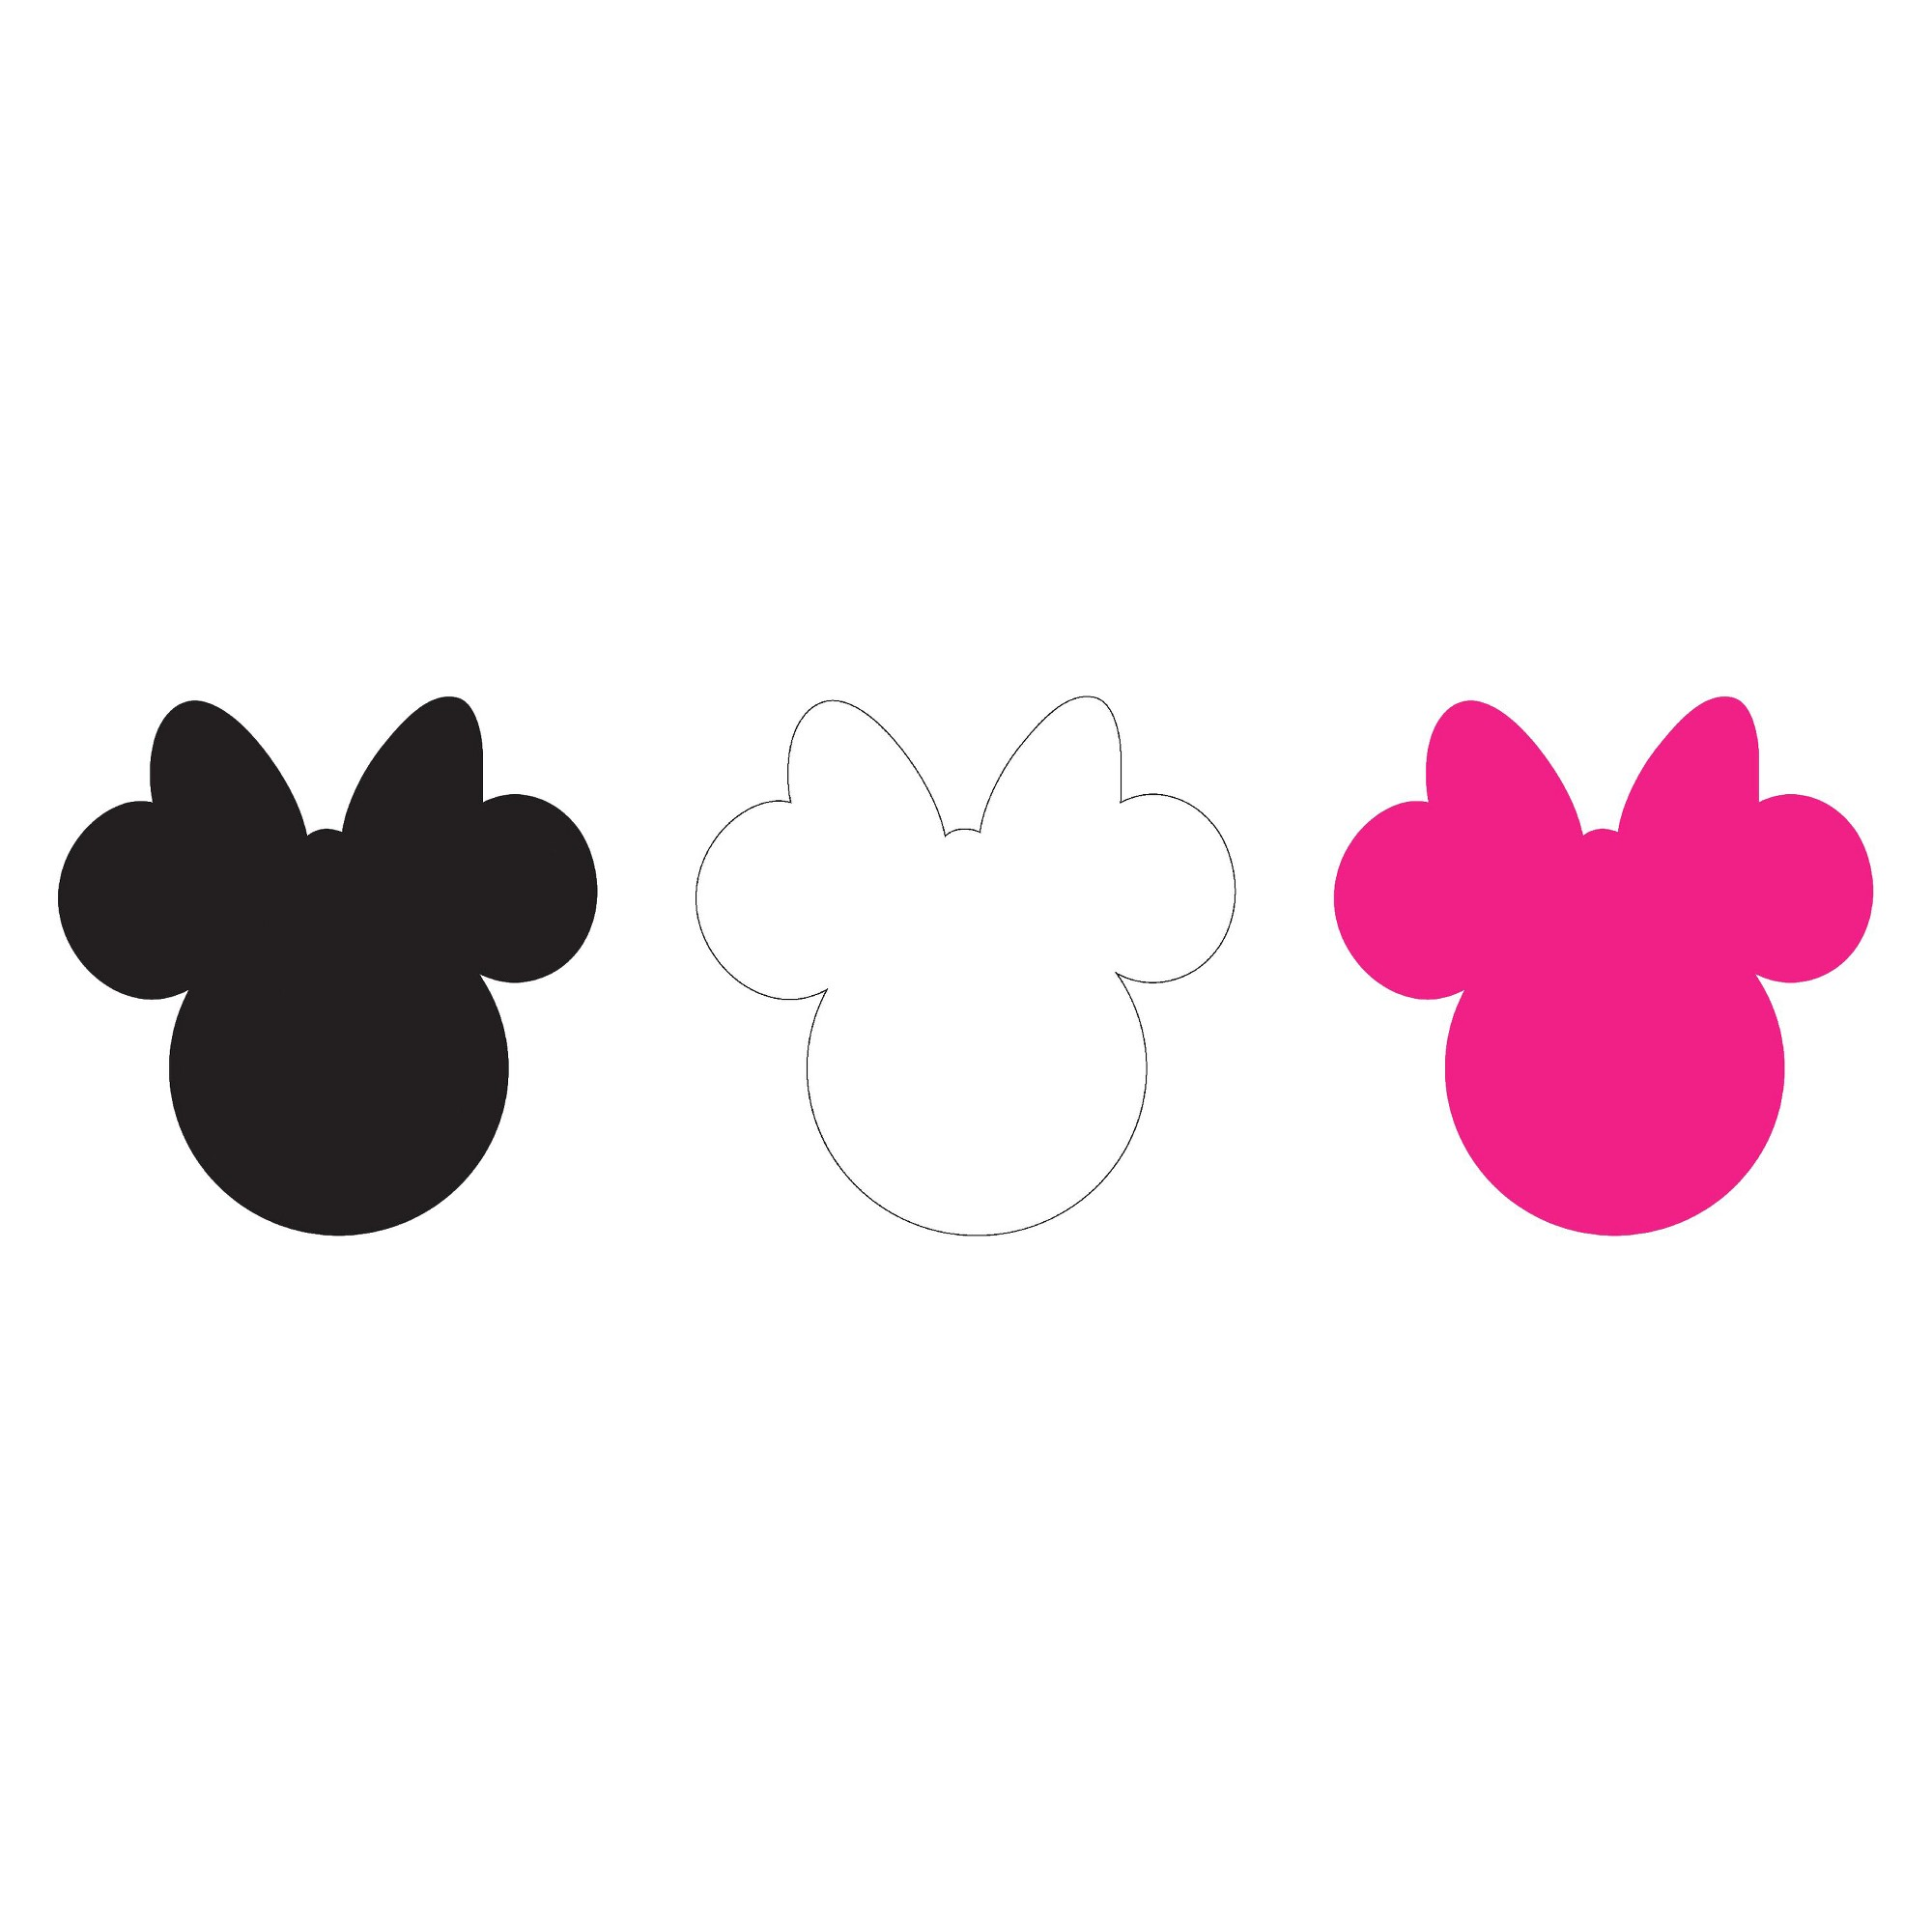 Disney Minnie Ears Large, Multi, Adhesive Felt, Pack of 6